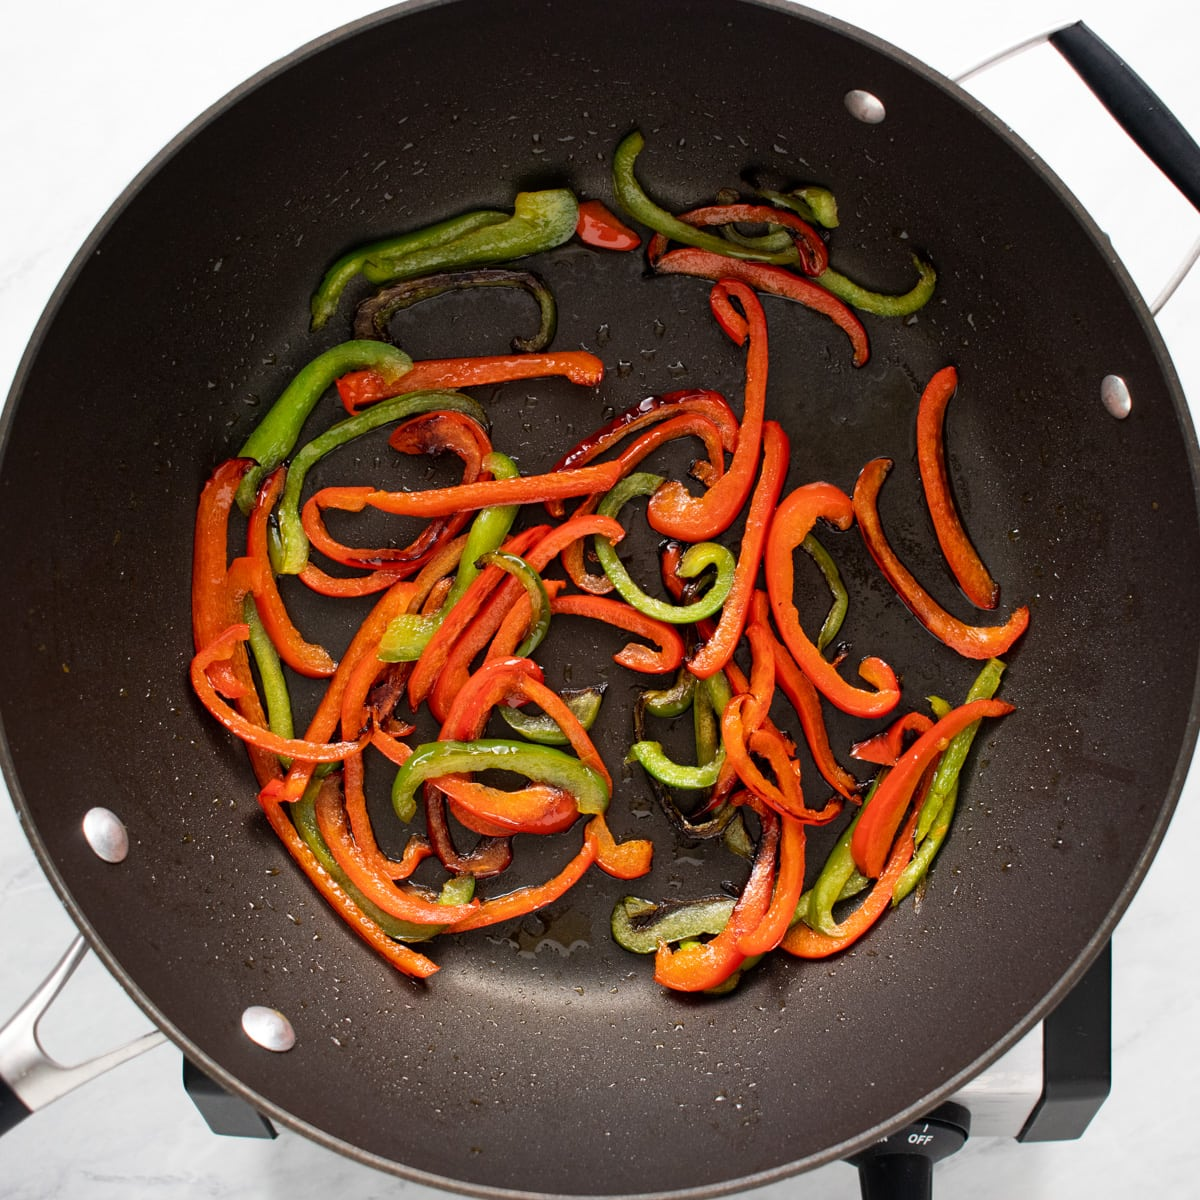 A skillet with sautéed slices of red and green bell pepper.